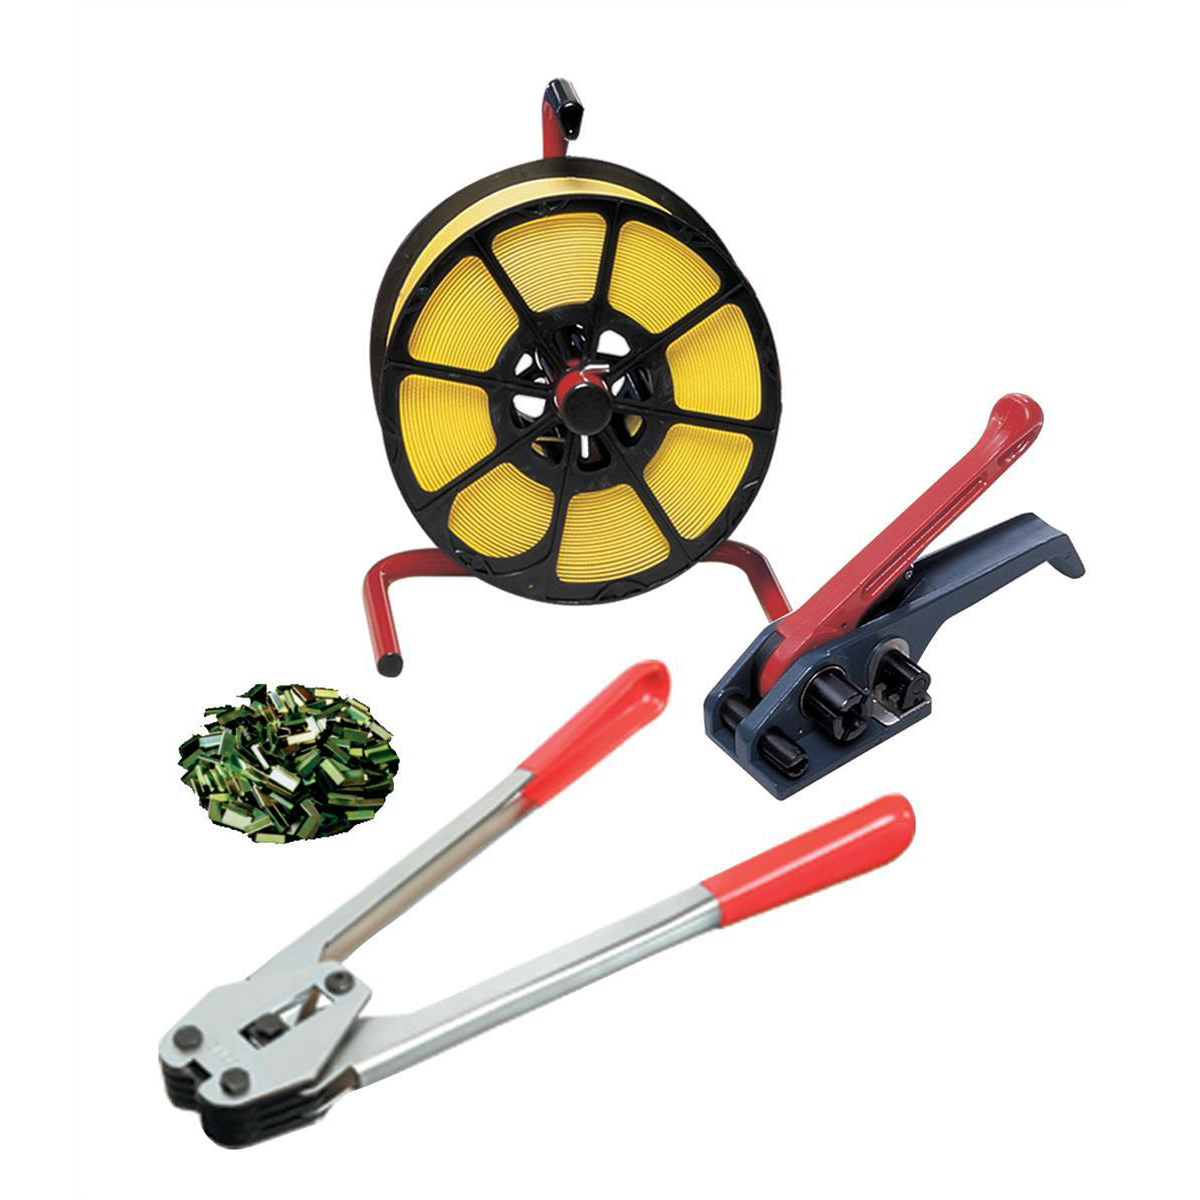 Strapping tensioners or sealers Strapping Kit of 12mm Tensioner 12mm Sealer 12mmx1500m Strapping Coil plus 500 Seals